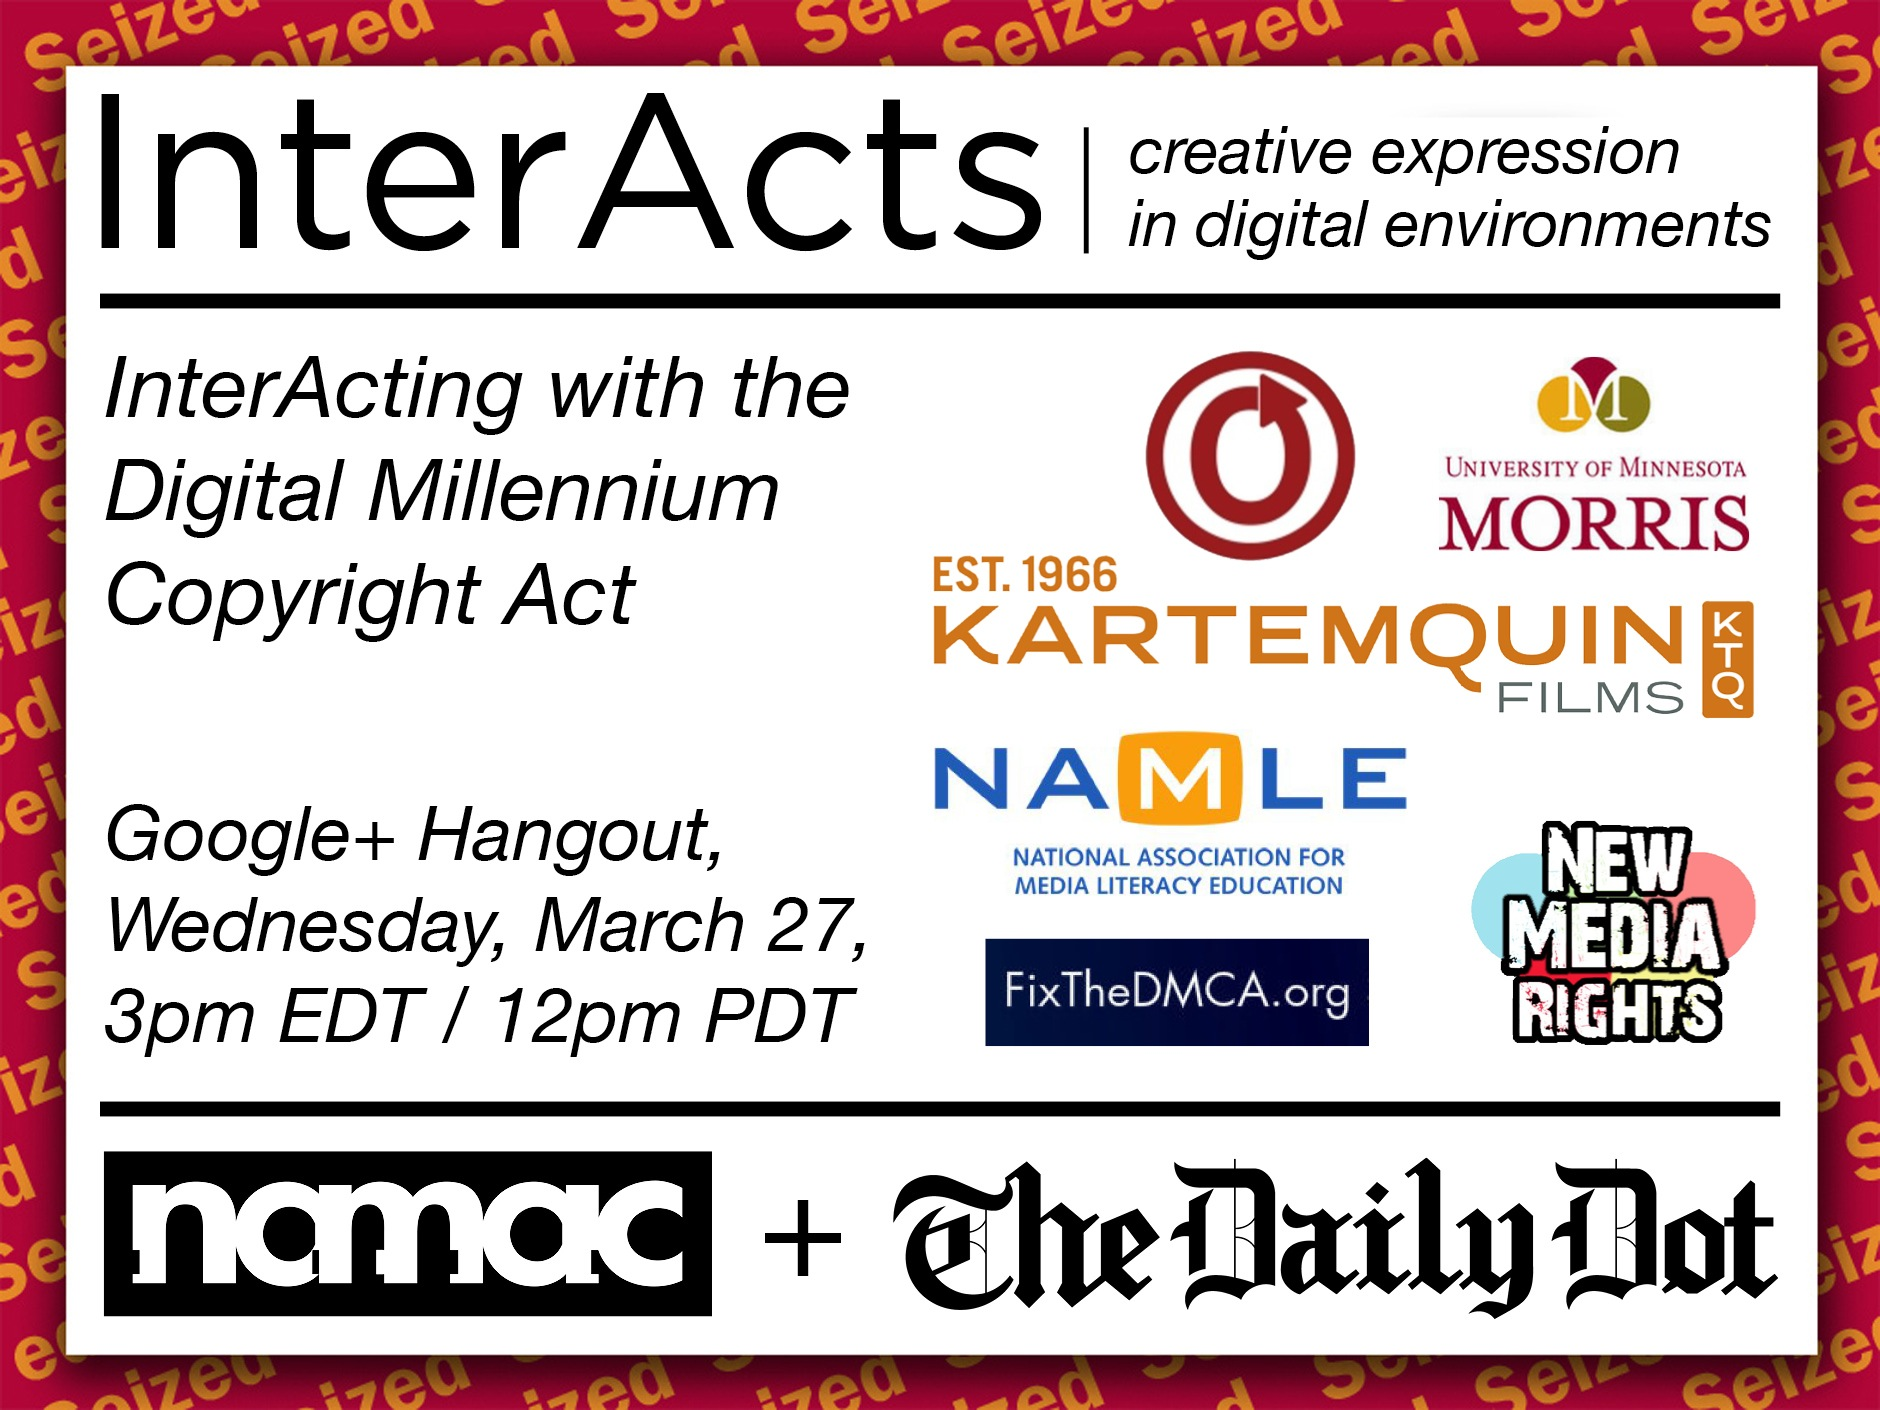 InterActing with the Digital Millennium Copyright Act